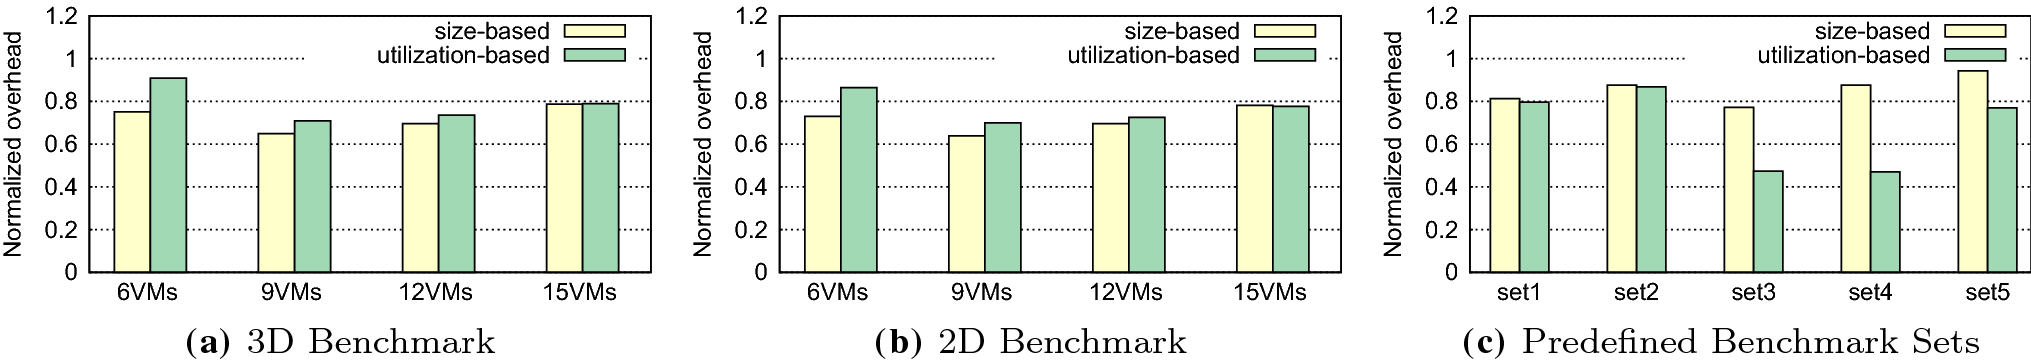 Low-overhead dynamic sharing of graphics memory space in GPU